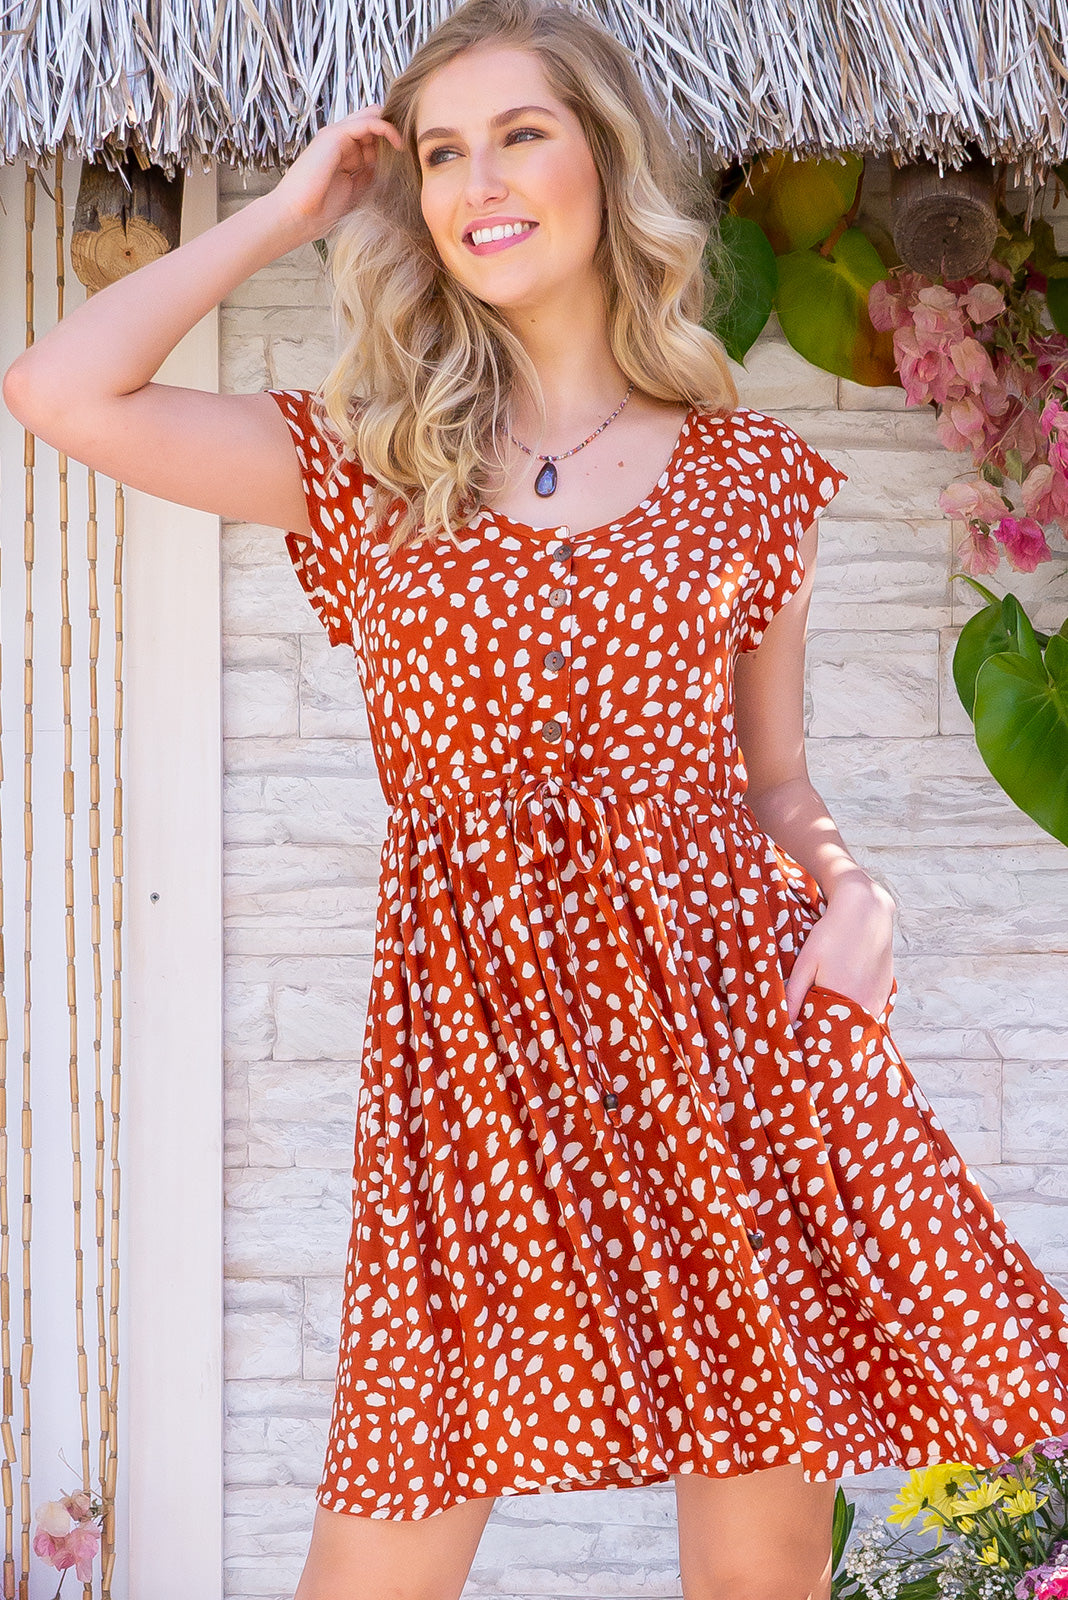 Juniper Rust Animale Dress - Short, breezy, caramel coloured summer dress. Functional button front to waist, drawstring waist, pockets and made in 100% rayon.